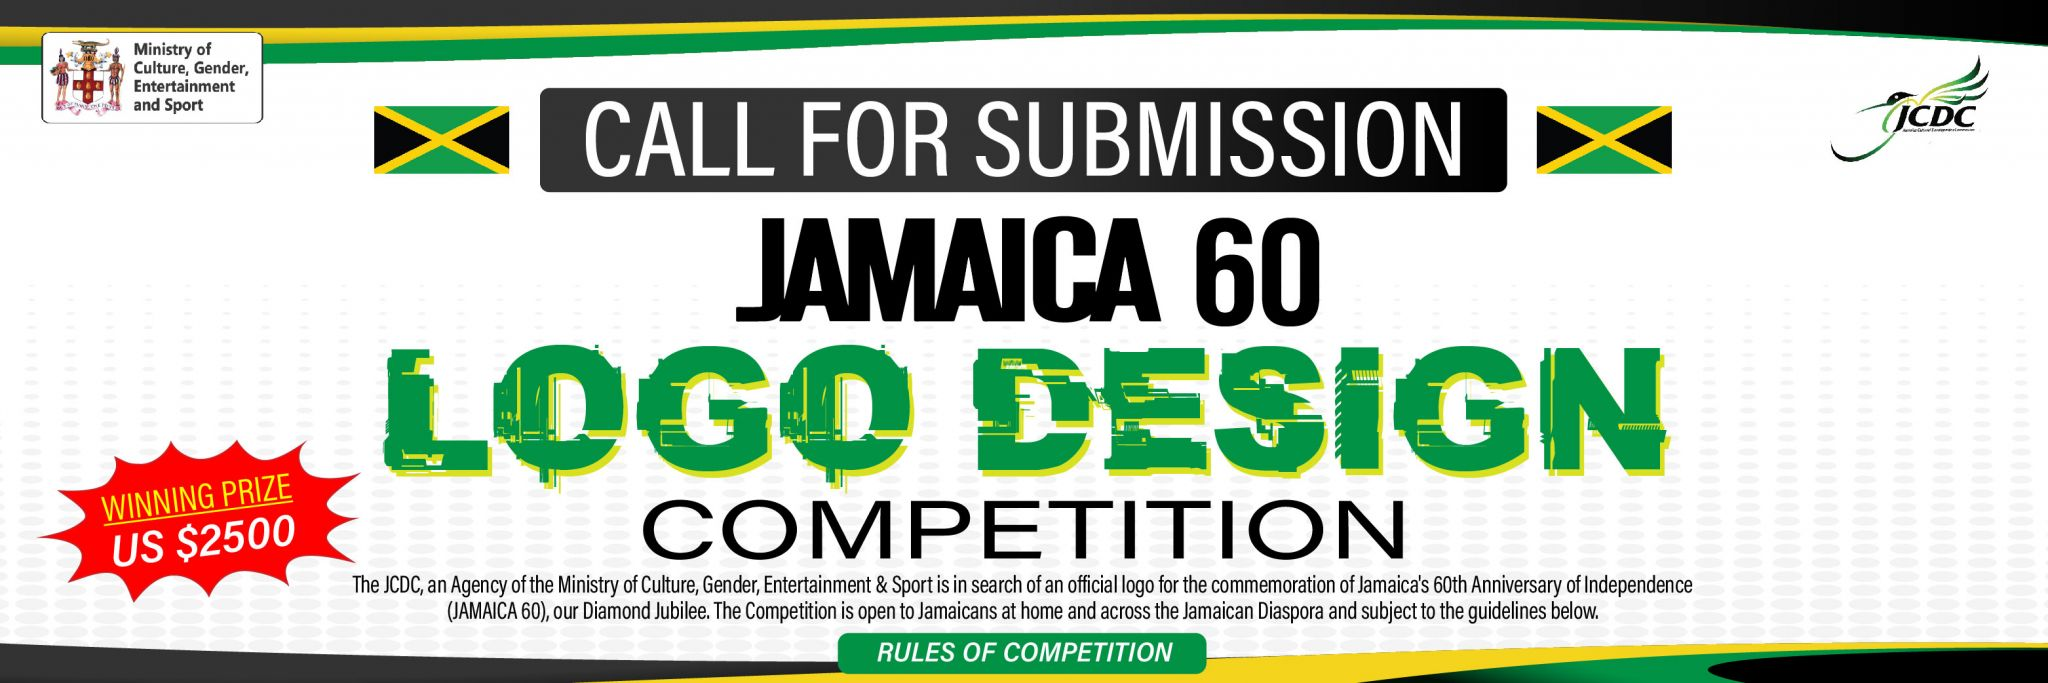 Jamaica 60 Logo Competition